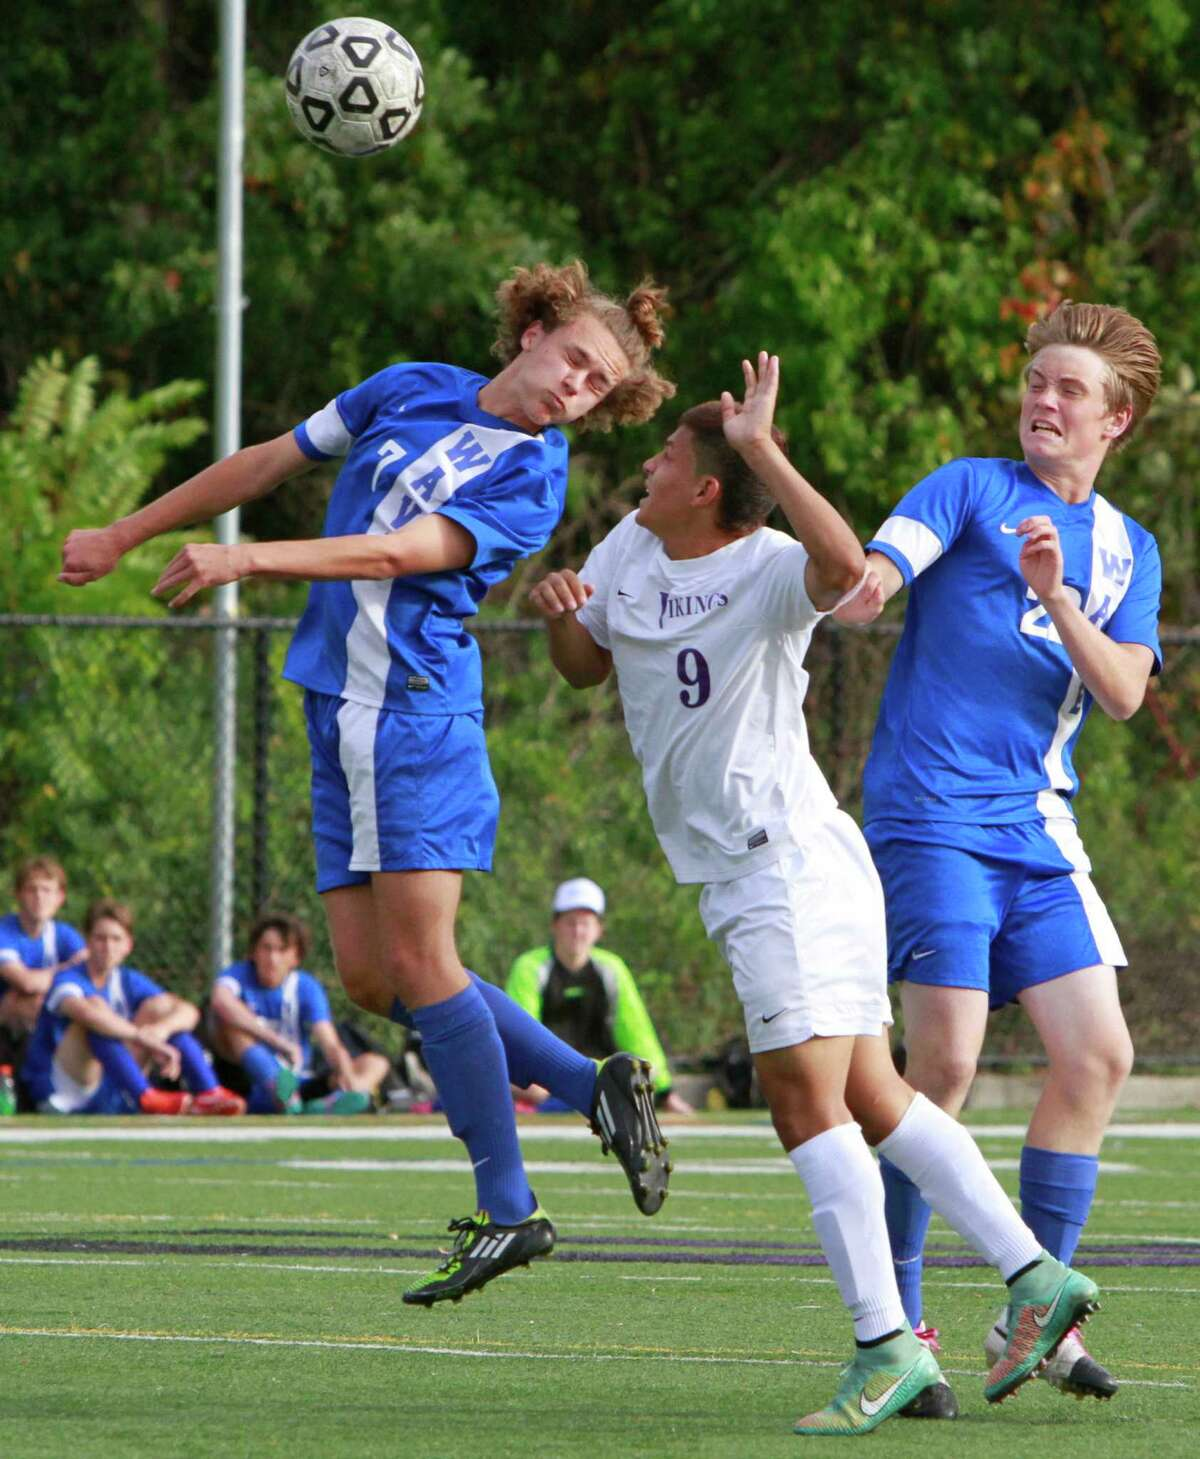 Darien's Tore Erikisen and Pater Case battle with Jairo David Garcia for the ball at midfield. Darien defeated Westhill 3-2 in a varsity boys soccer match on Oct.14, 2015 in Stamford.